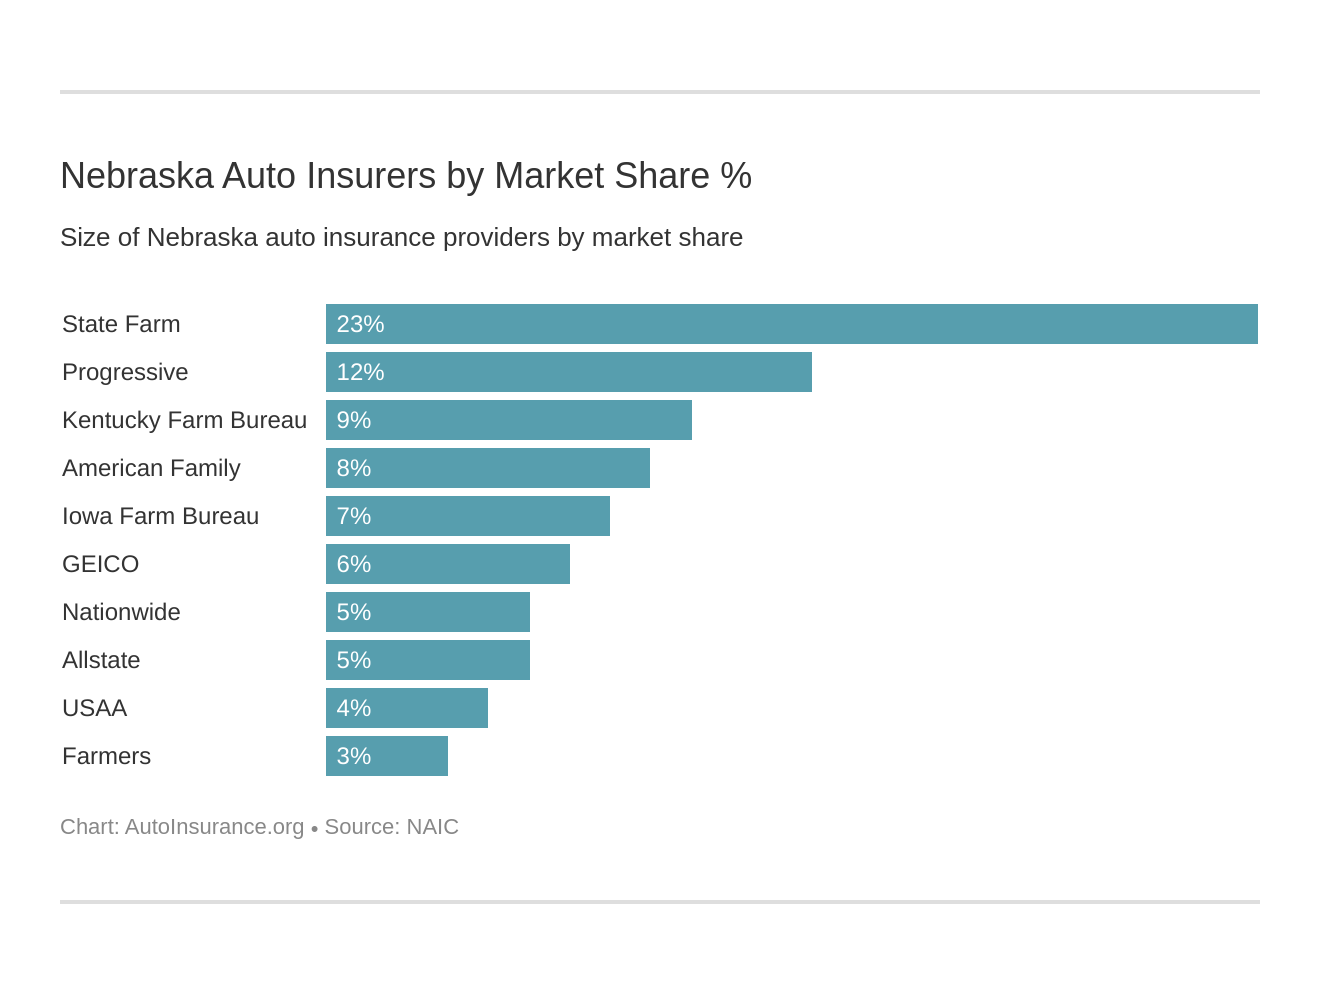 Nebraska Auto Insurers by Market Share %